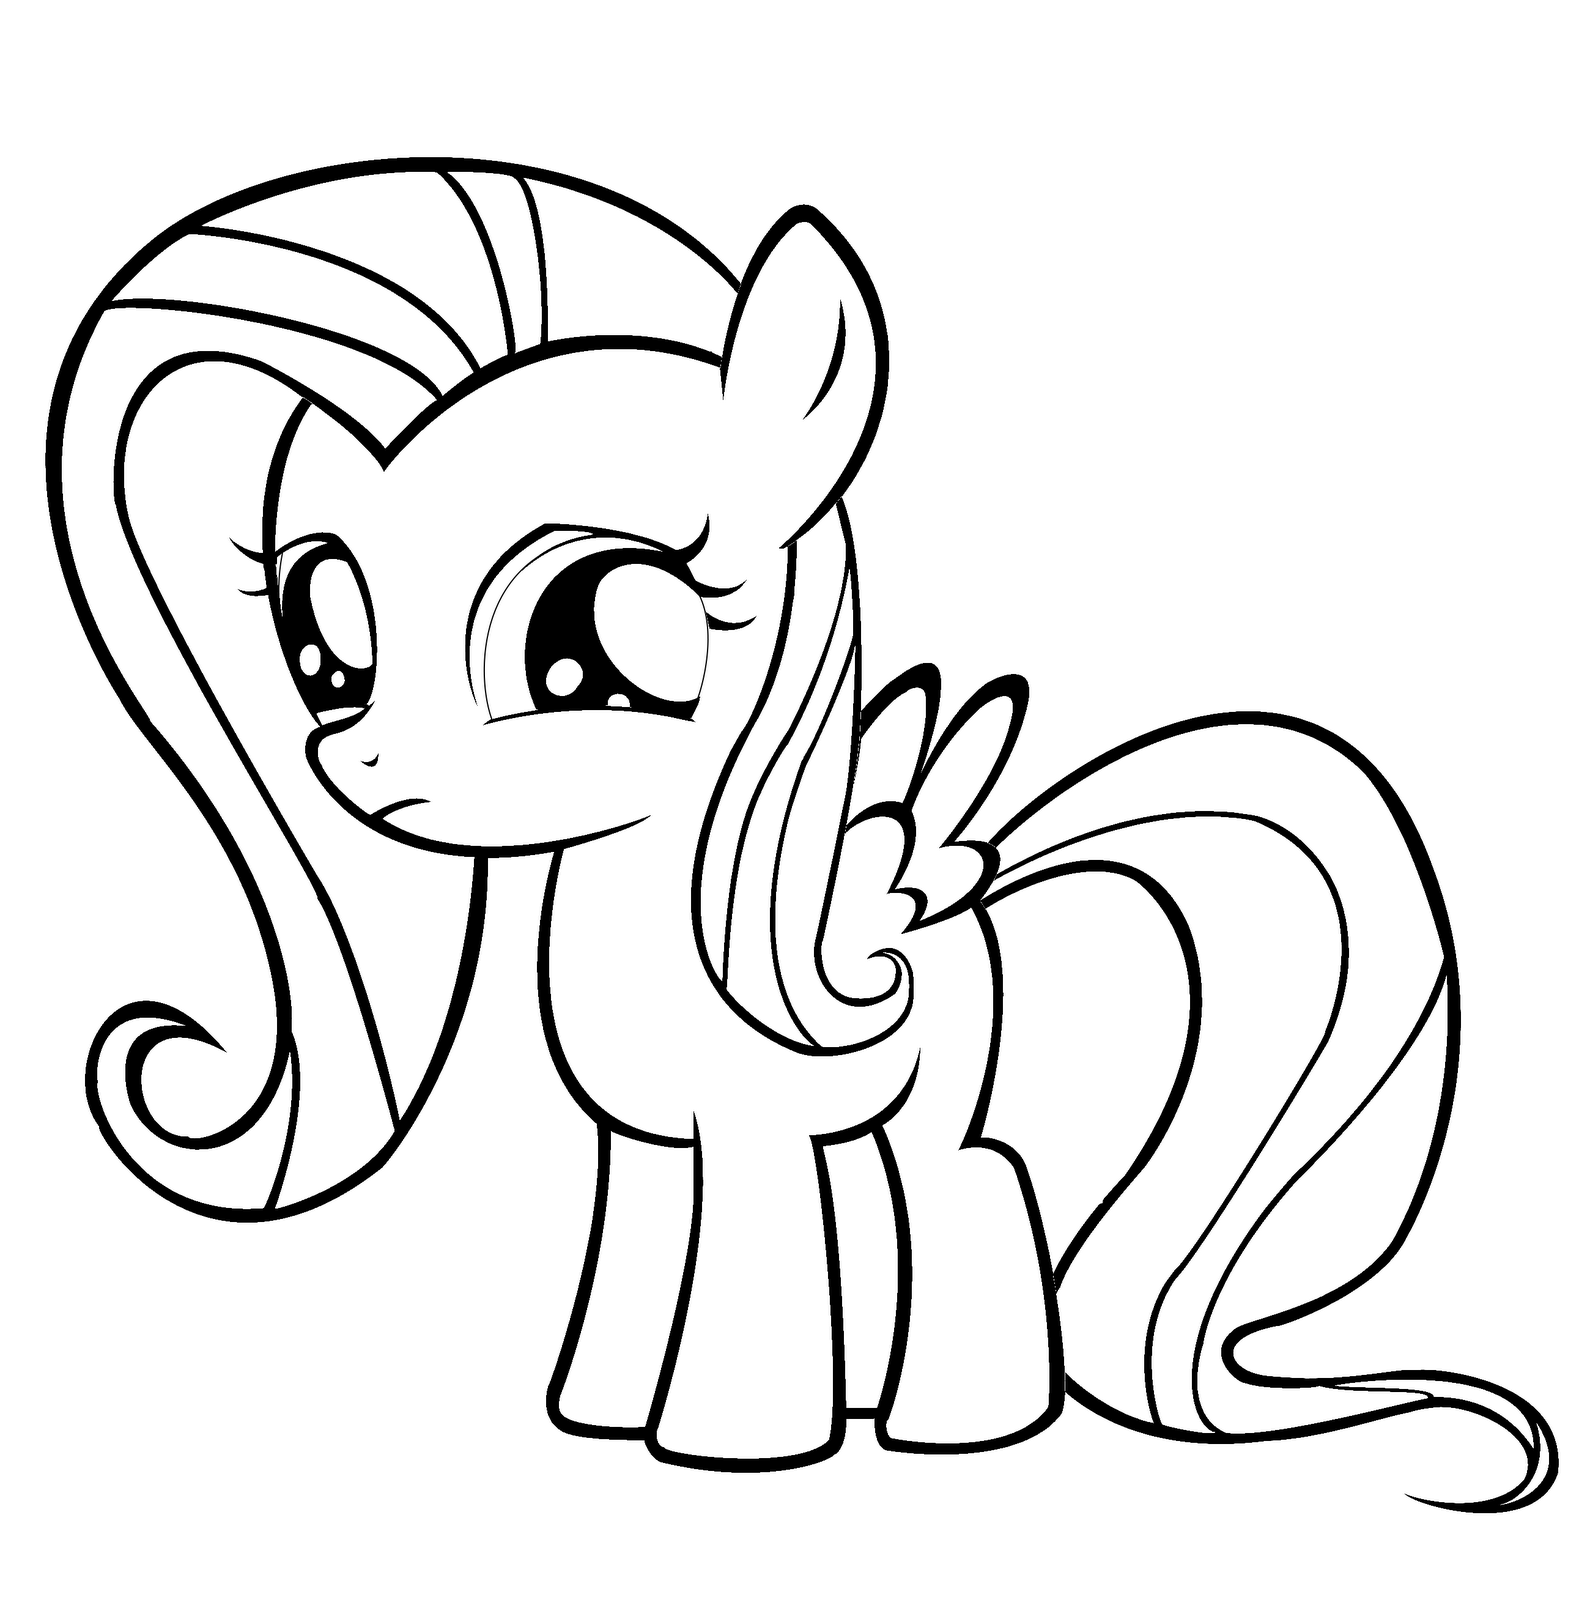 my little pony coloring pages my little pony coloring pages friendship is magic team pages little my coloring pony